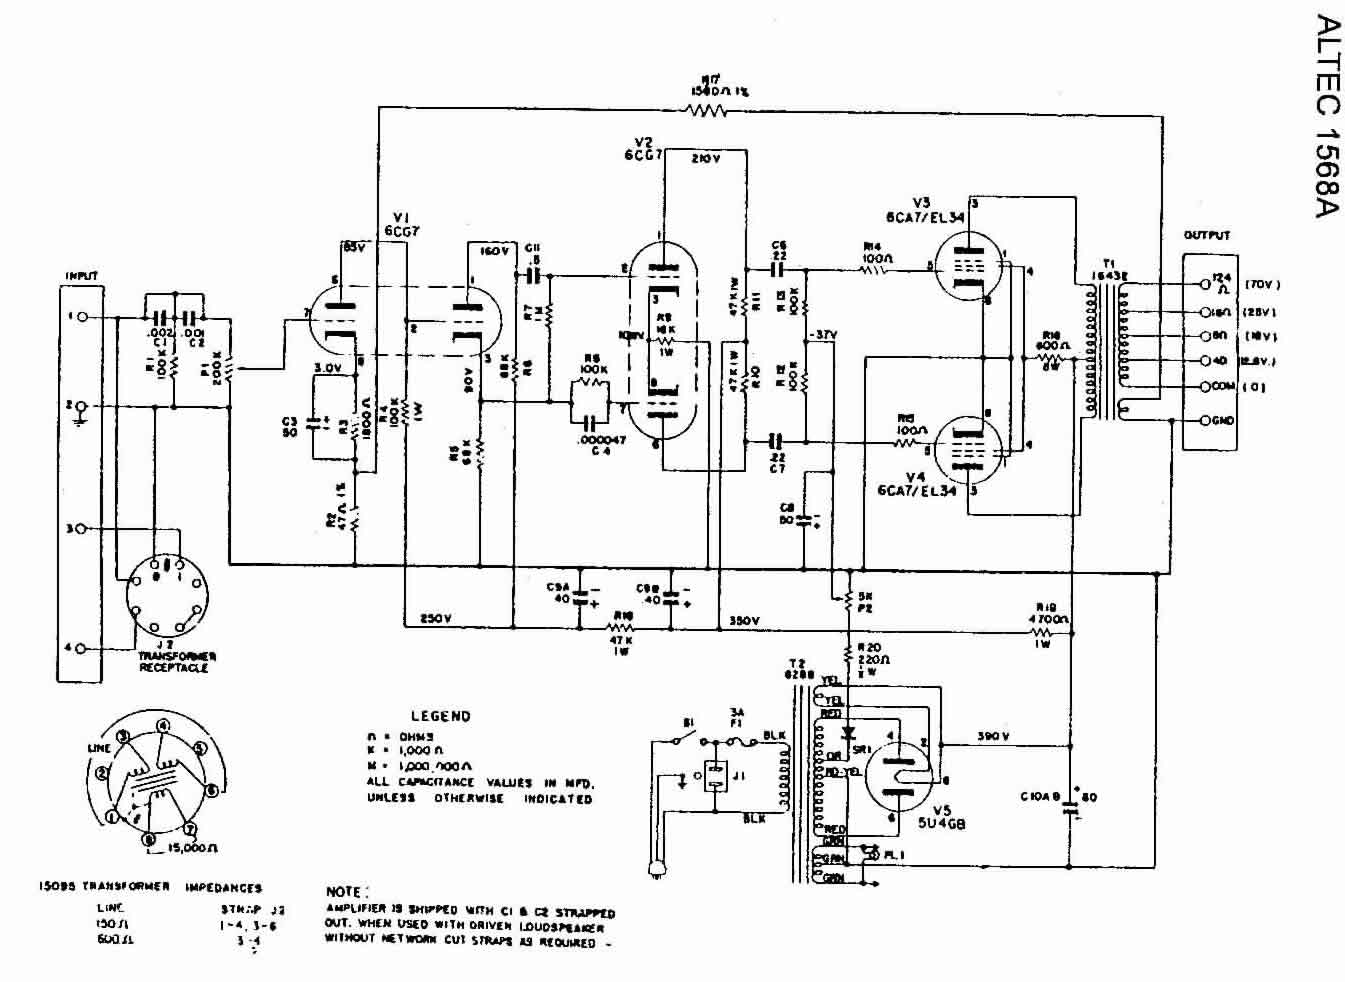 hight resolution of right click to download hi res 89kb schematic